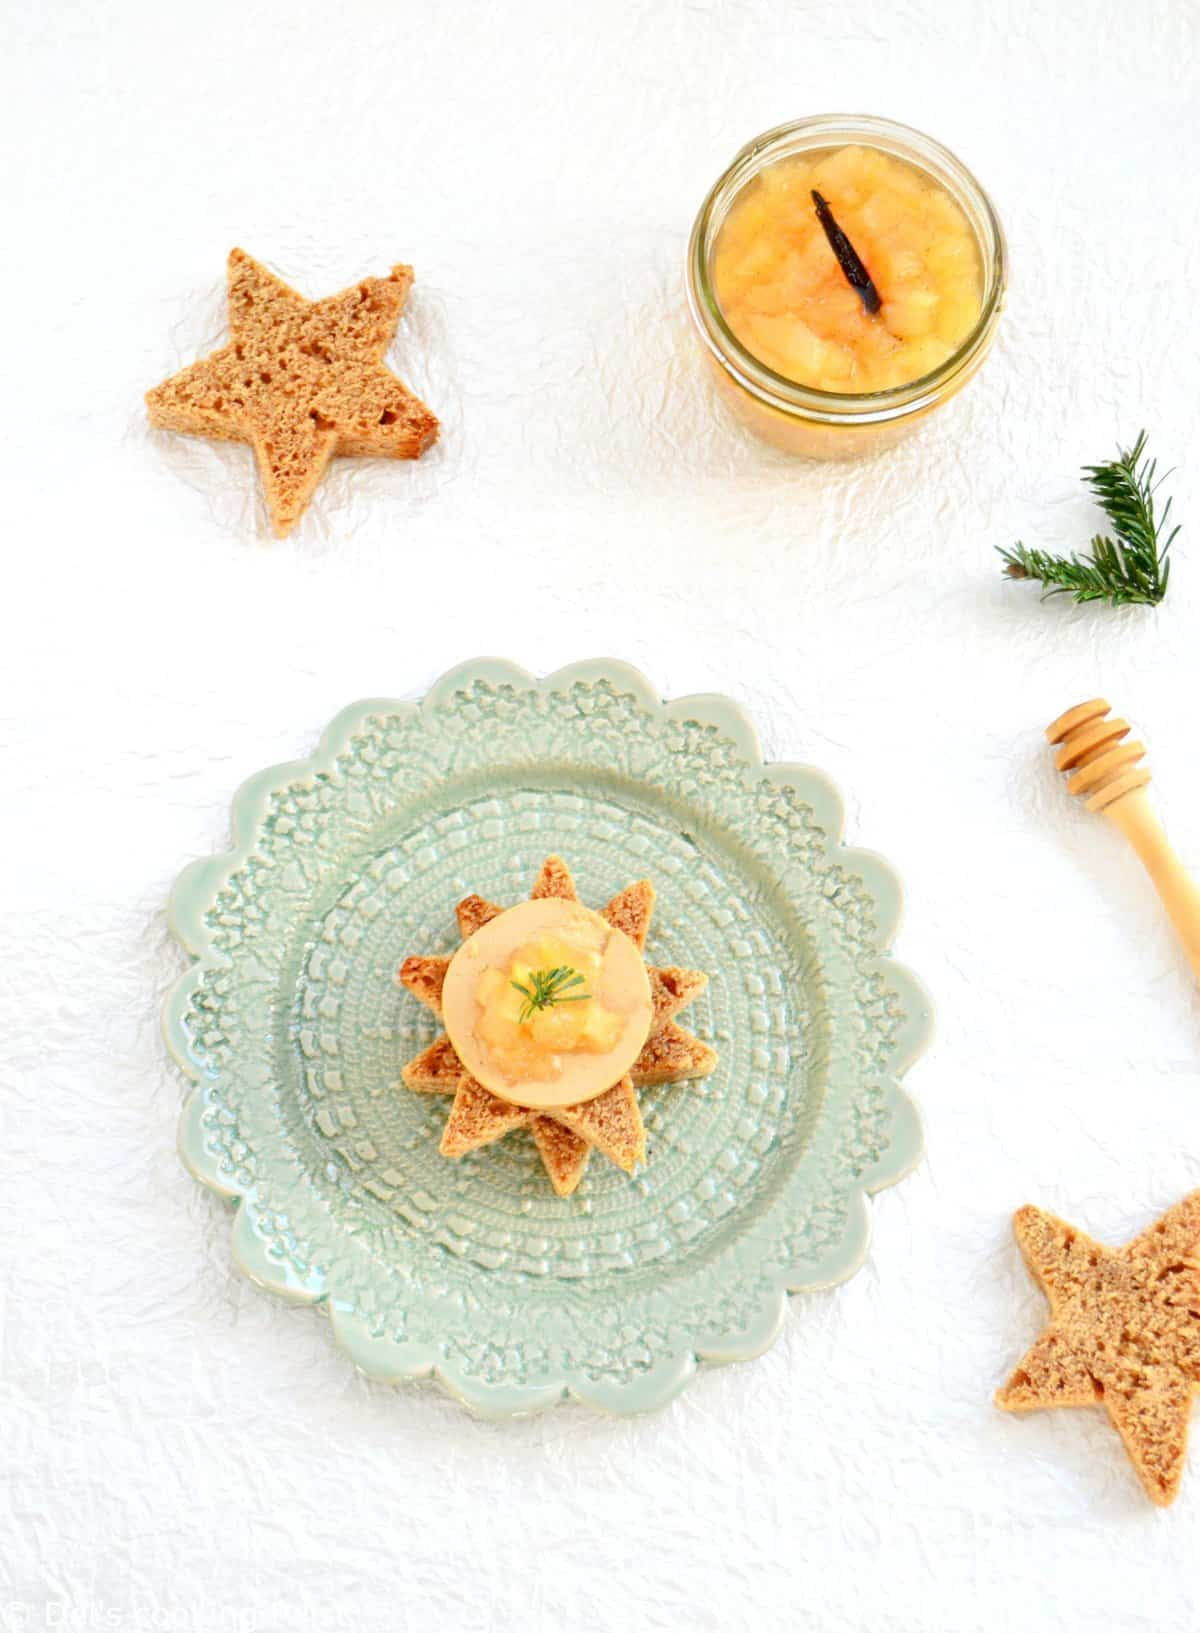 Star-Shaped Gingerbread with Foie Gras and Pear Confit